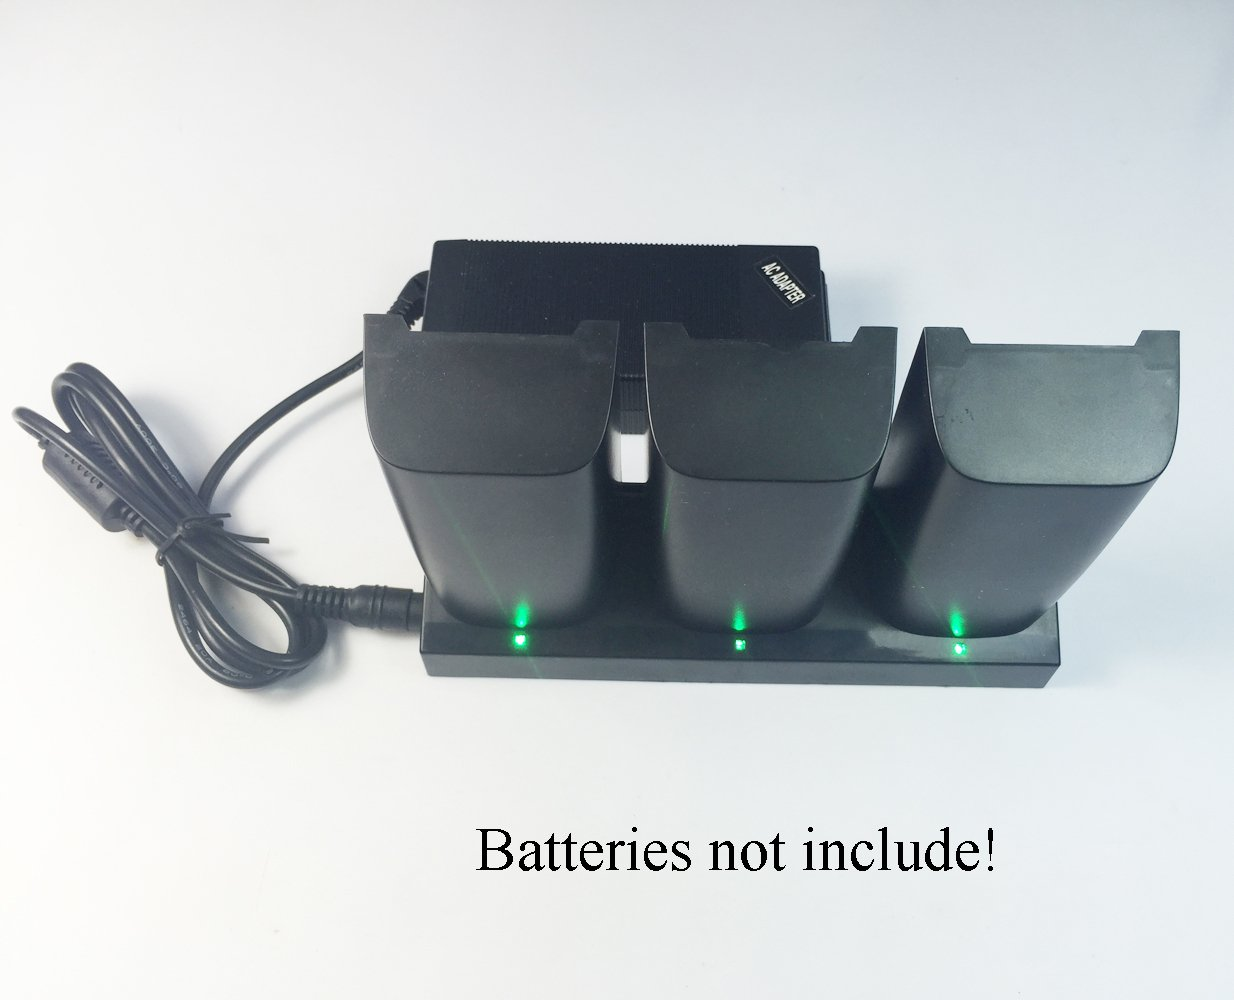 Anbee Parallel Multi-battery Balance Charger for Parrot Bebop Drone Quadcopter